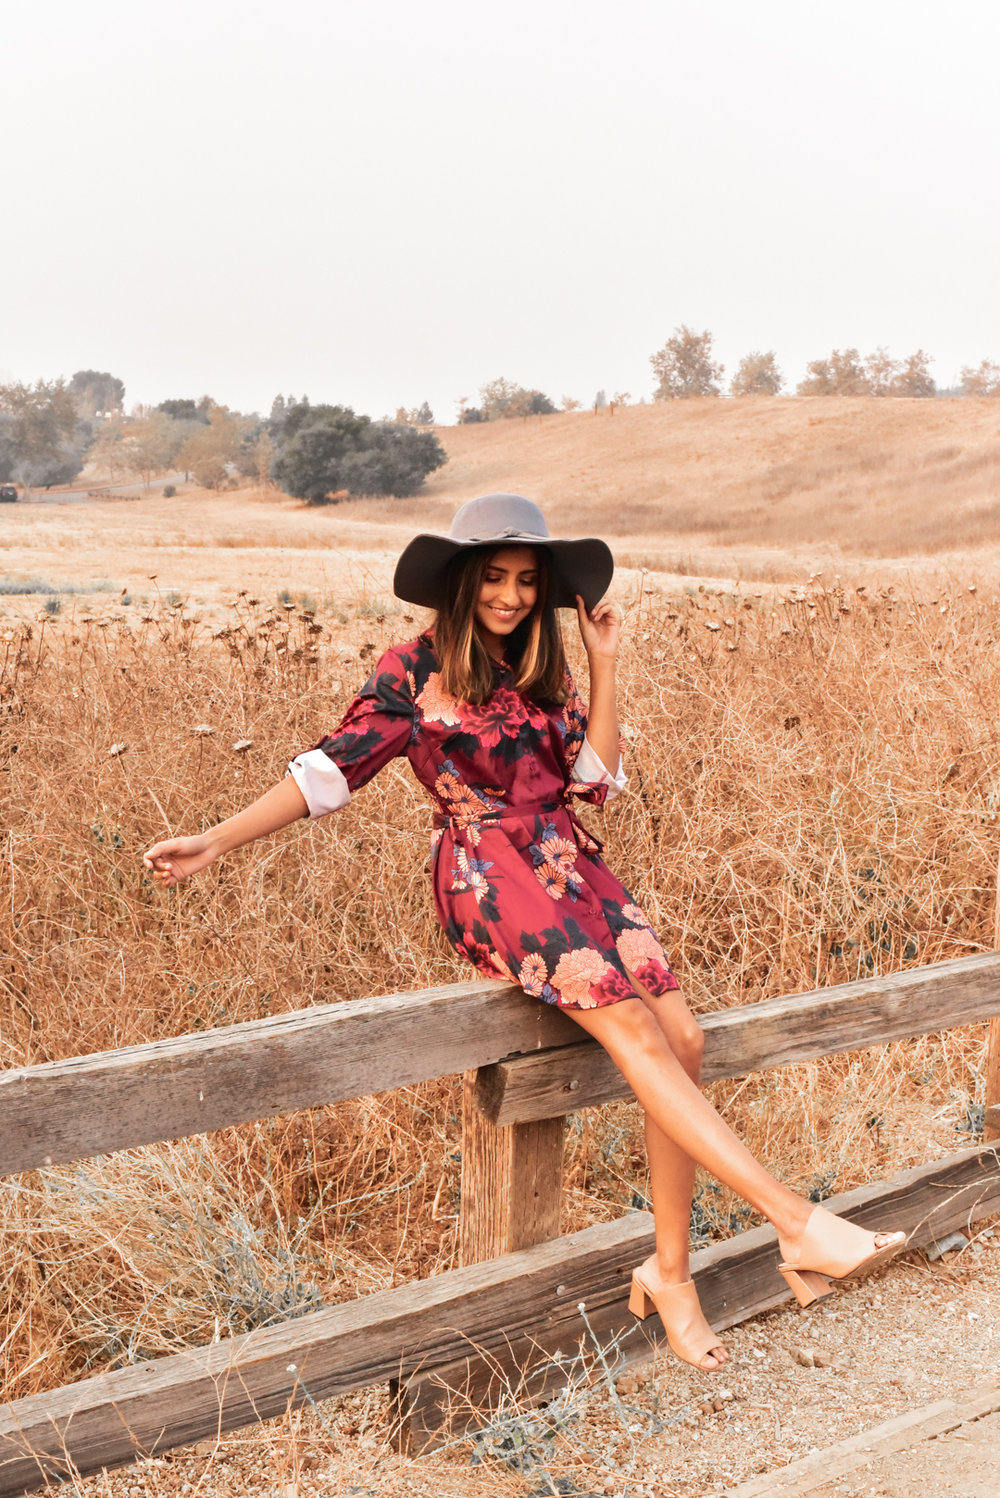 Dress: c/o  Femme luxe , Hat: Old (Similar  here ), shoes: J adams c/o  zooshoo